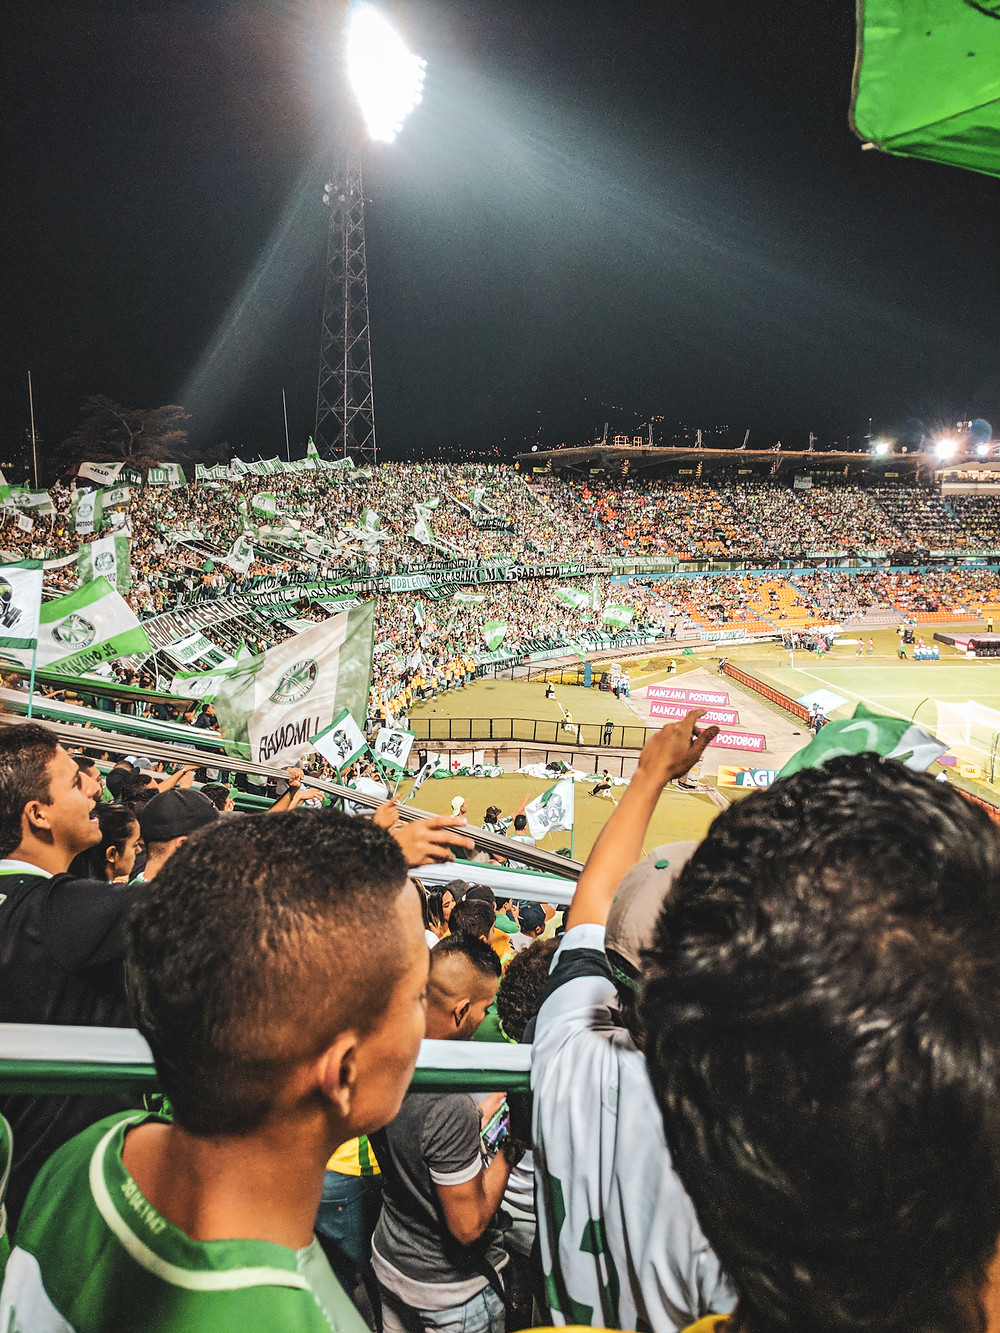 Sitting in the South section of an Atletico Nacional soccer game in Medellin, Colombia.